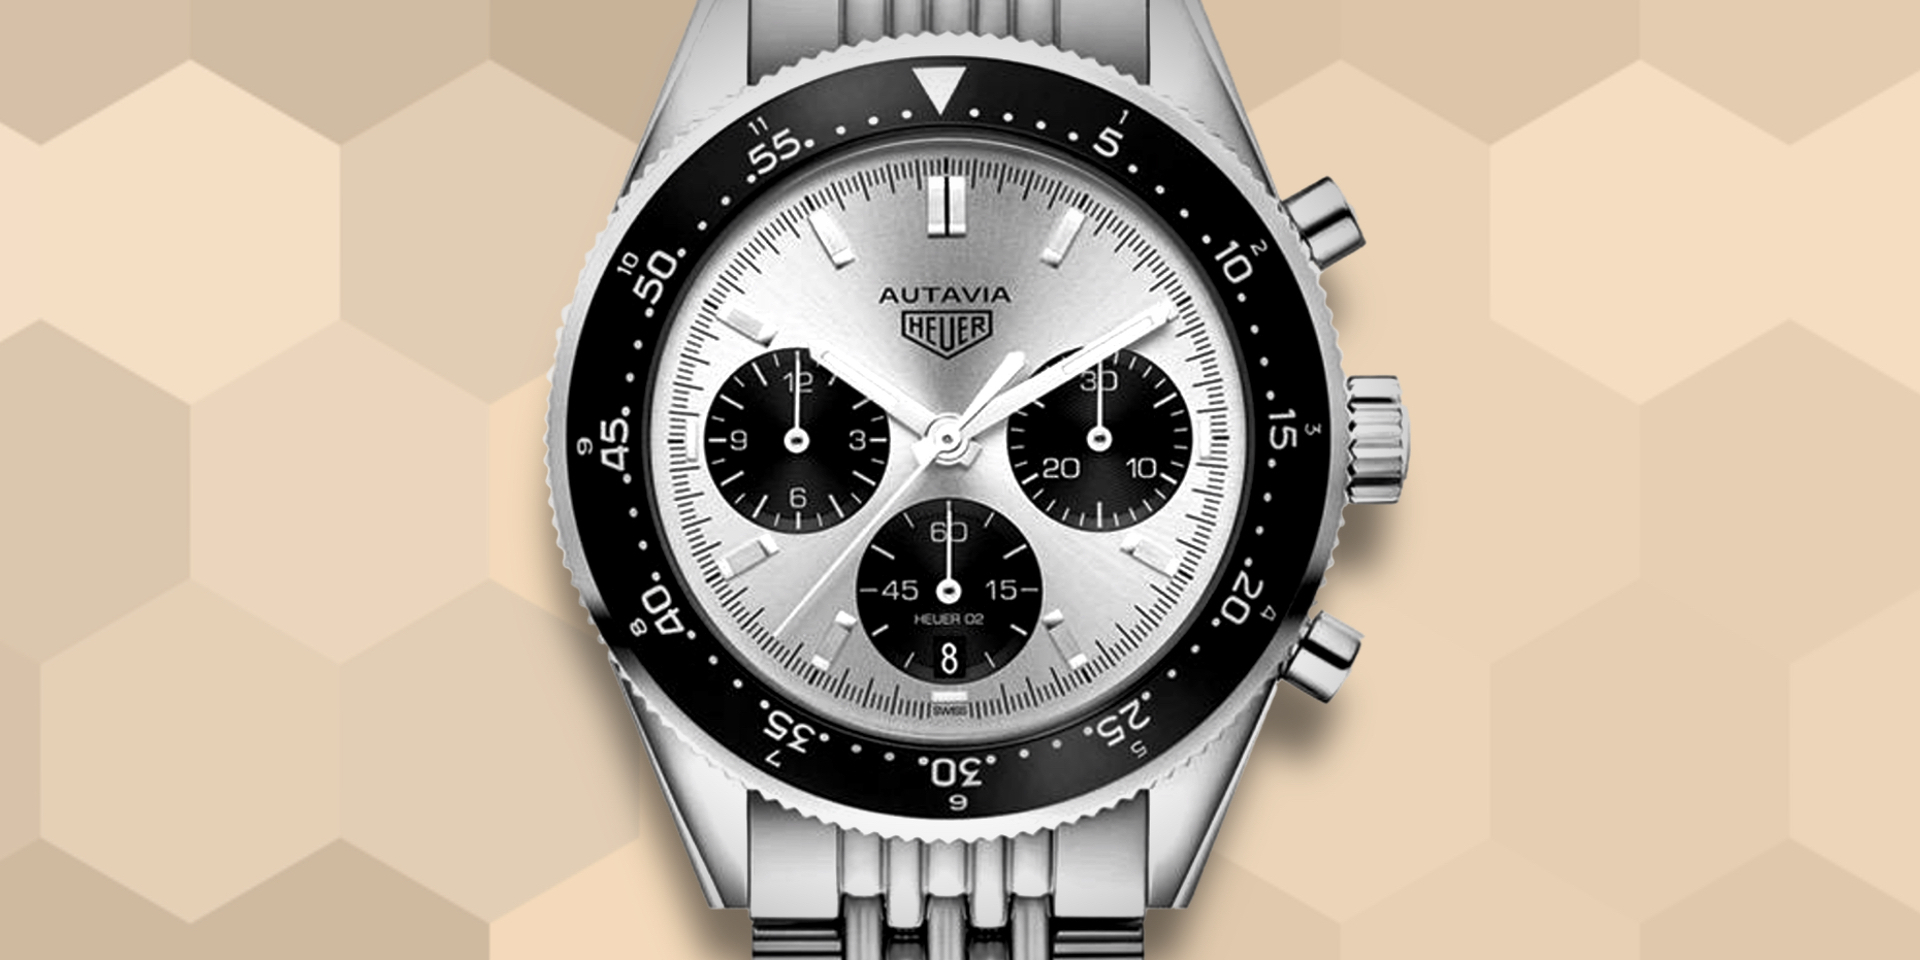 Daring Legacy or TAG Heuer's Best? The Heritage Autavia Calibre Heuer 02 Jack Heuer Edition